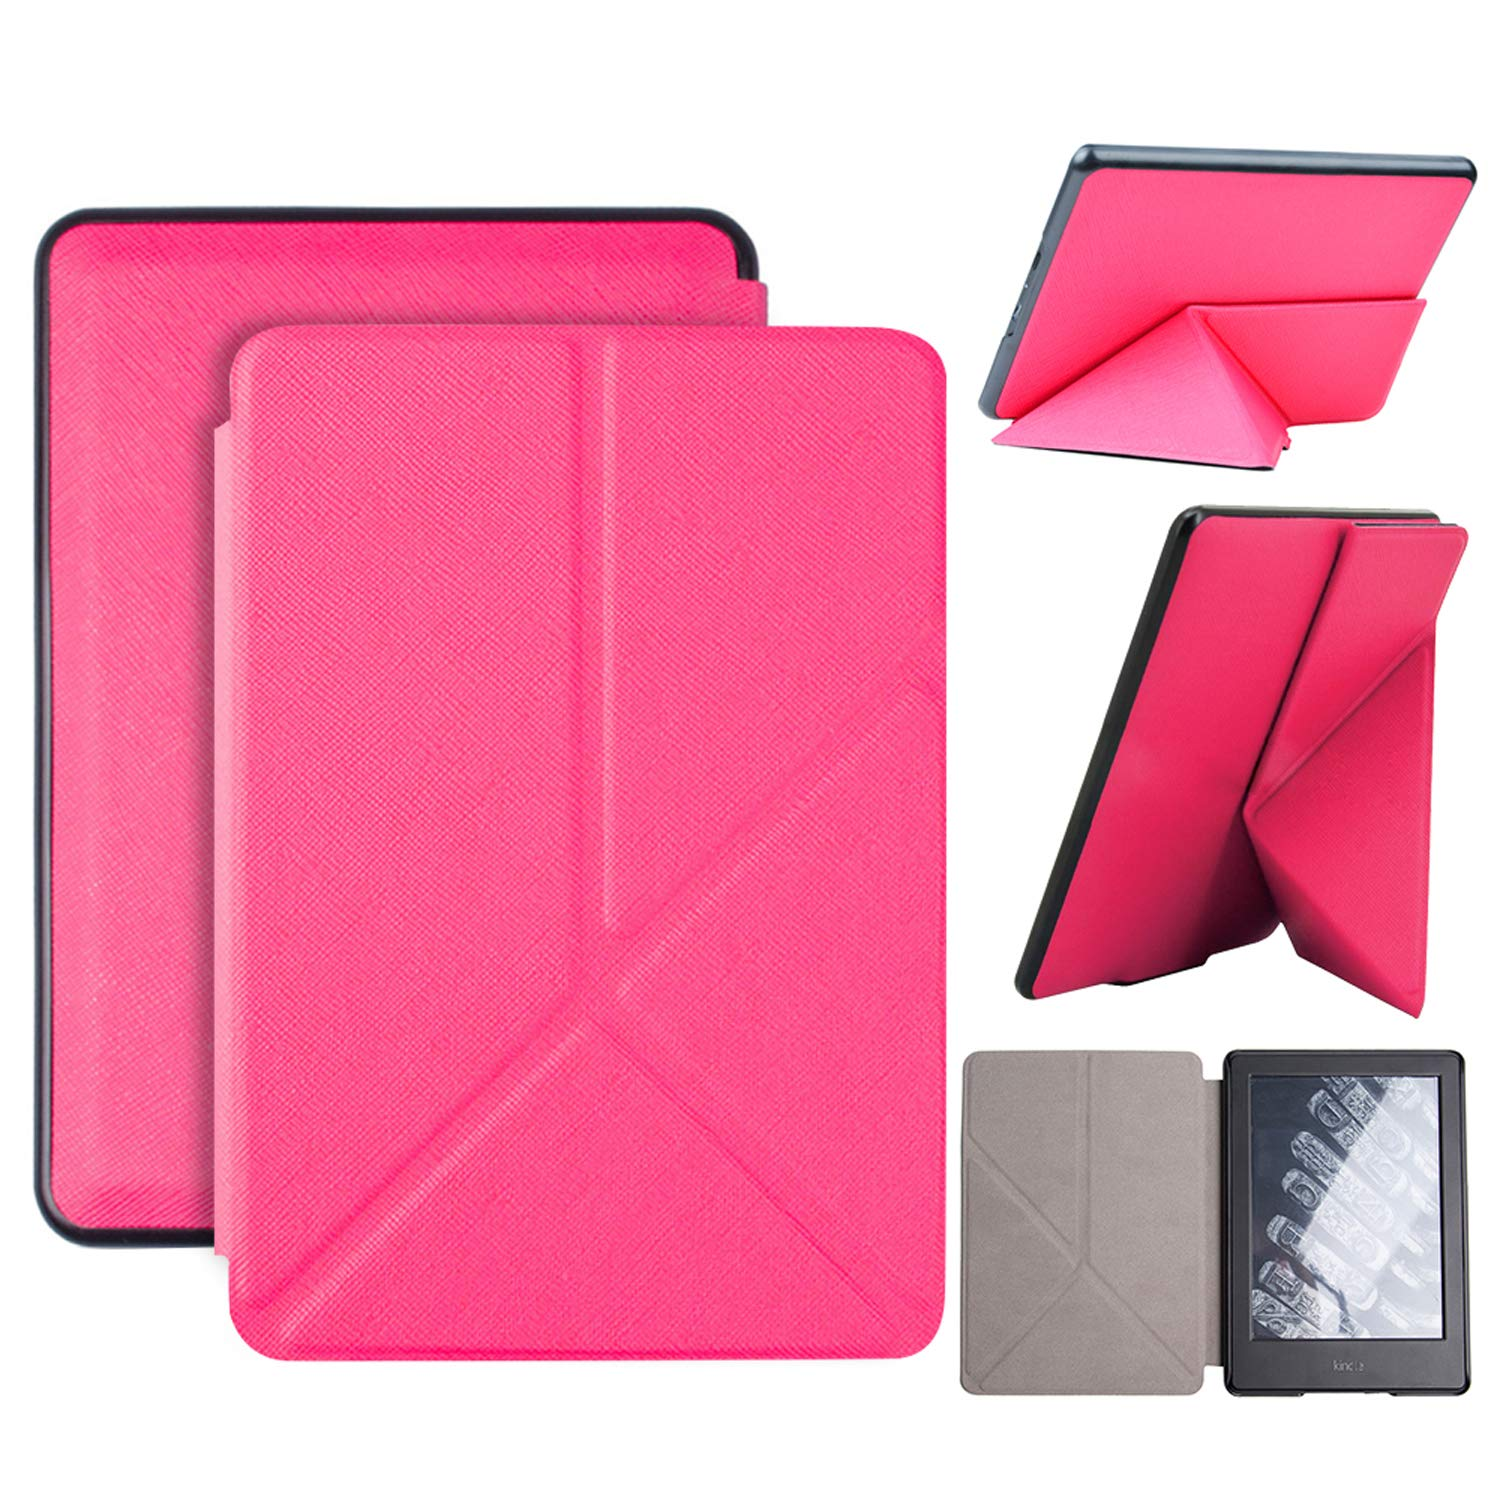 Fintie Origami Case for All-New Kindle Paperwhite - Slim Fit Stand Cover Support Hands Free Reading with Auto Sleep//Wake for  Kindle Paperwhite E-Reader Black 10th Generation, 2018 Release